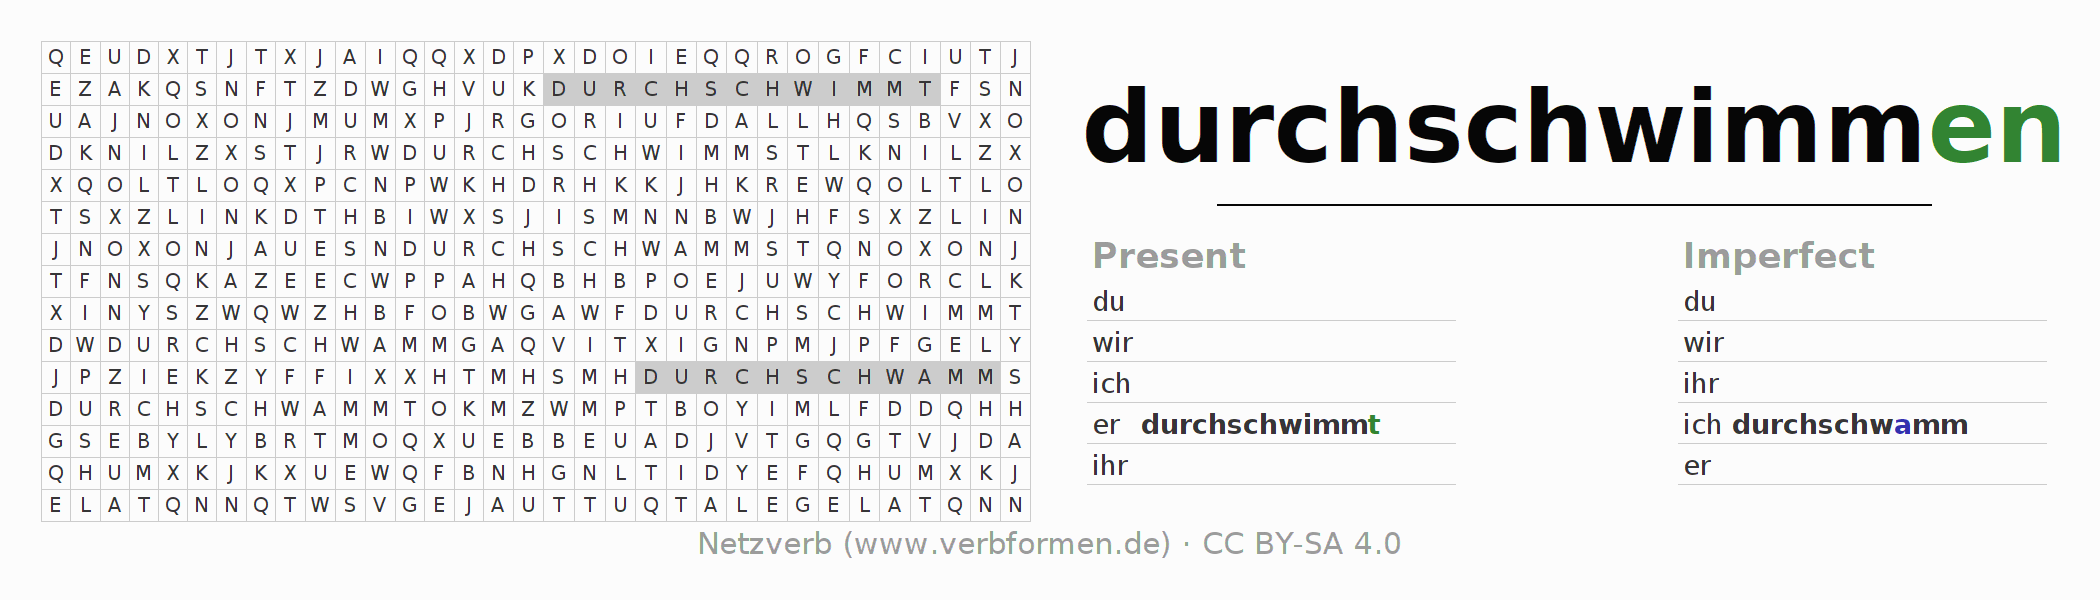 Word search puzzle for the conjugation of the verb durchschwimmen (hat)